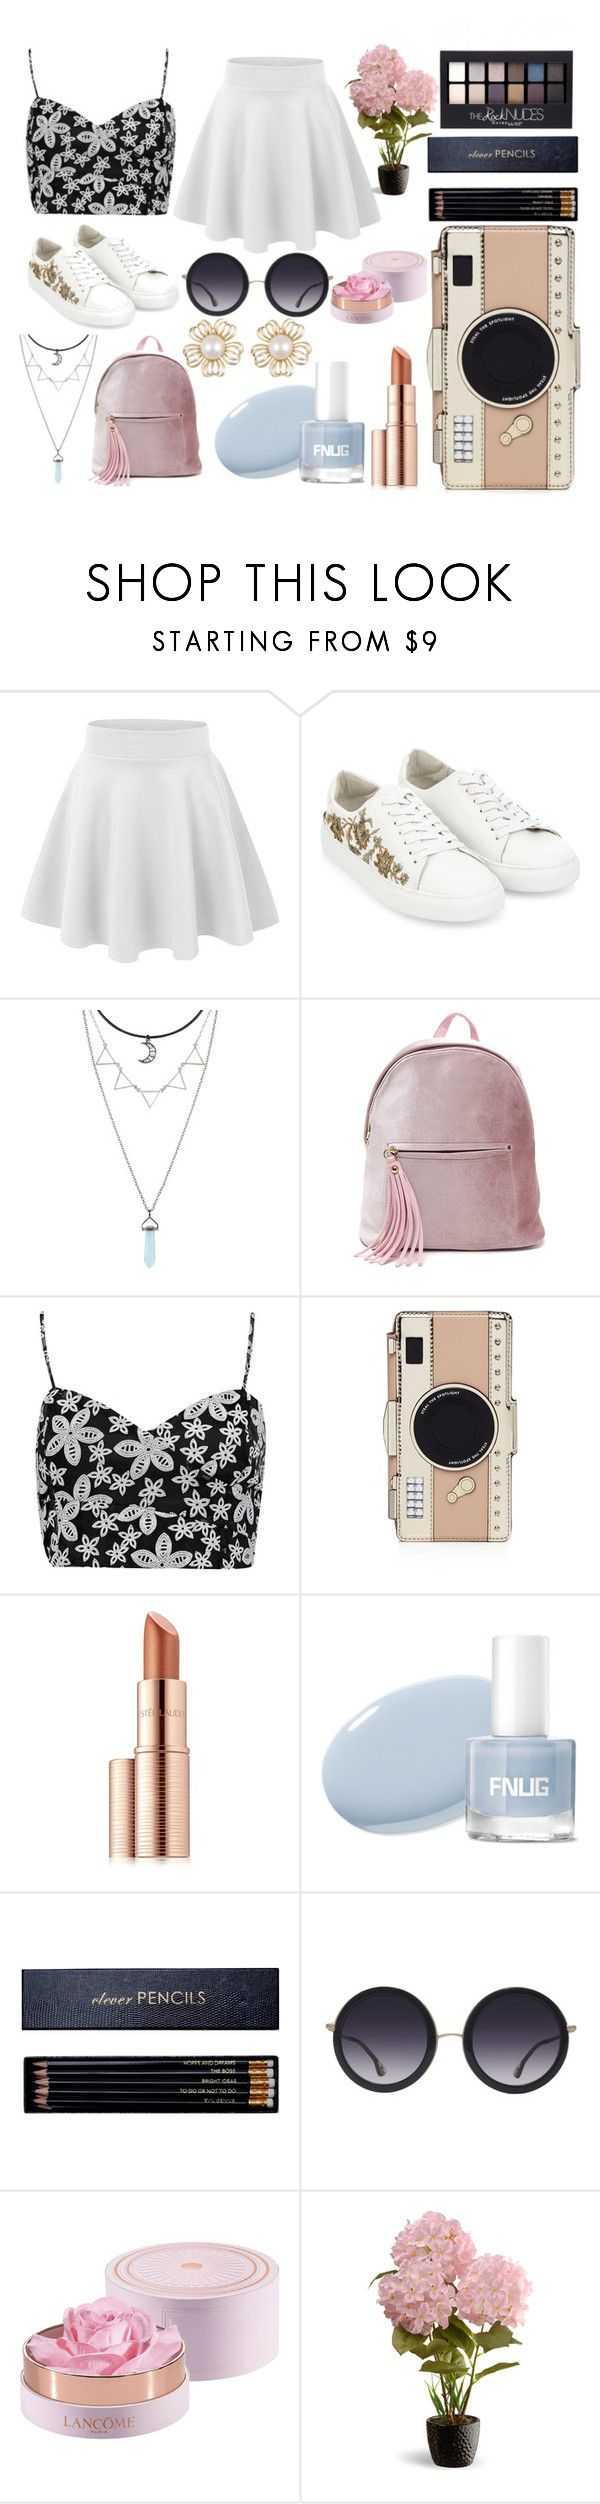 """""""068."""" by sivanlarry18 ❤ liked on Polyvore featuring Monsoon, Boohoo, Kate Spade, Estée Lauder, Maybelline, Sloane Stationery, Alice + Olivia, Lancôme and National Tree Company"""